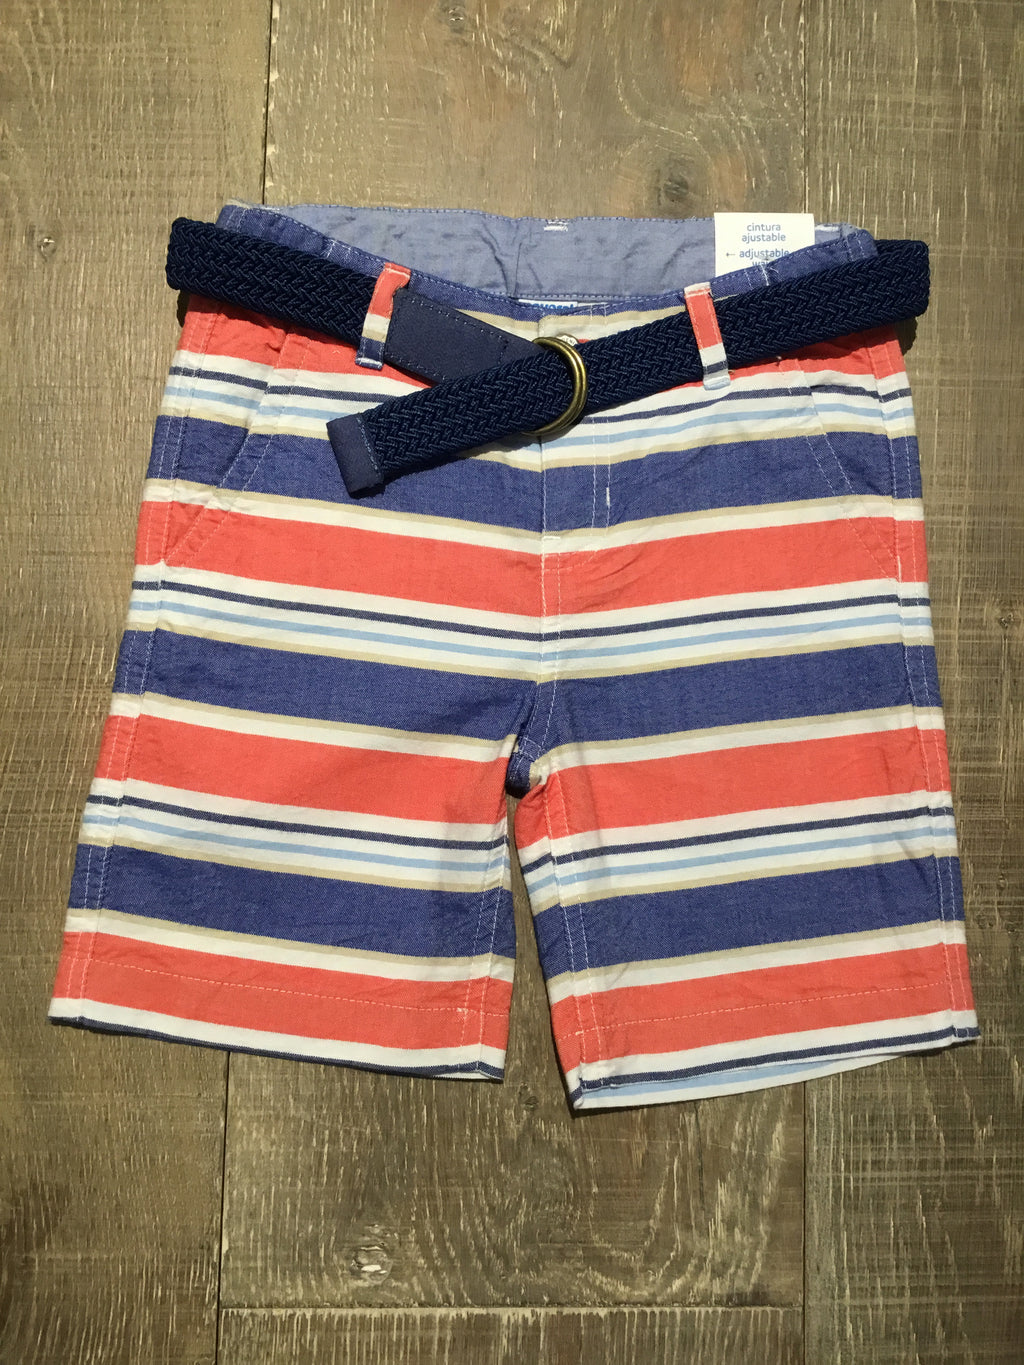 Blue & Red Oxford Shorts & Belt